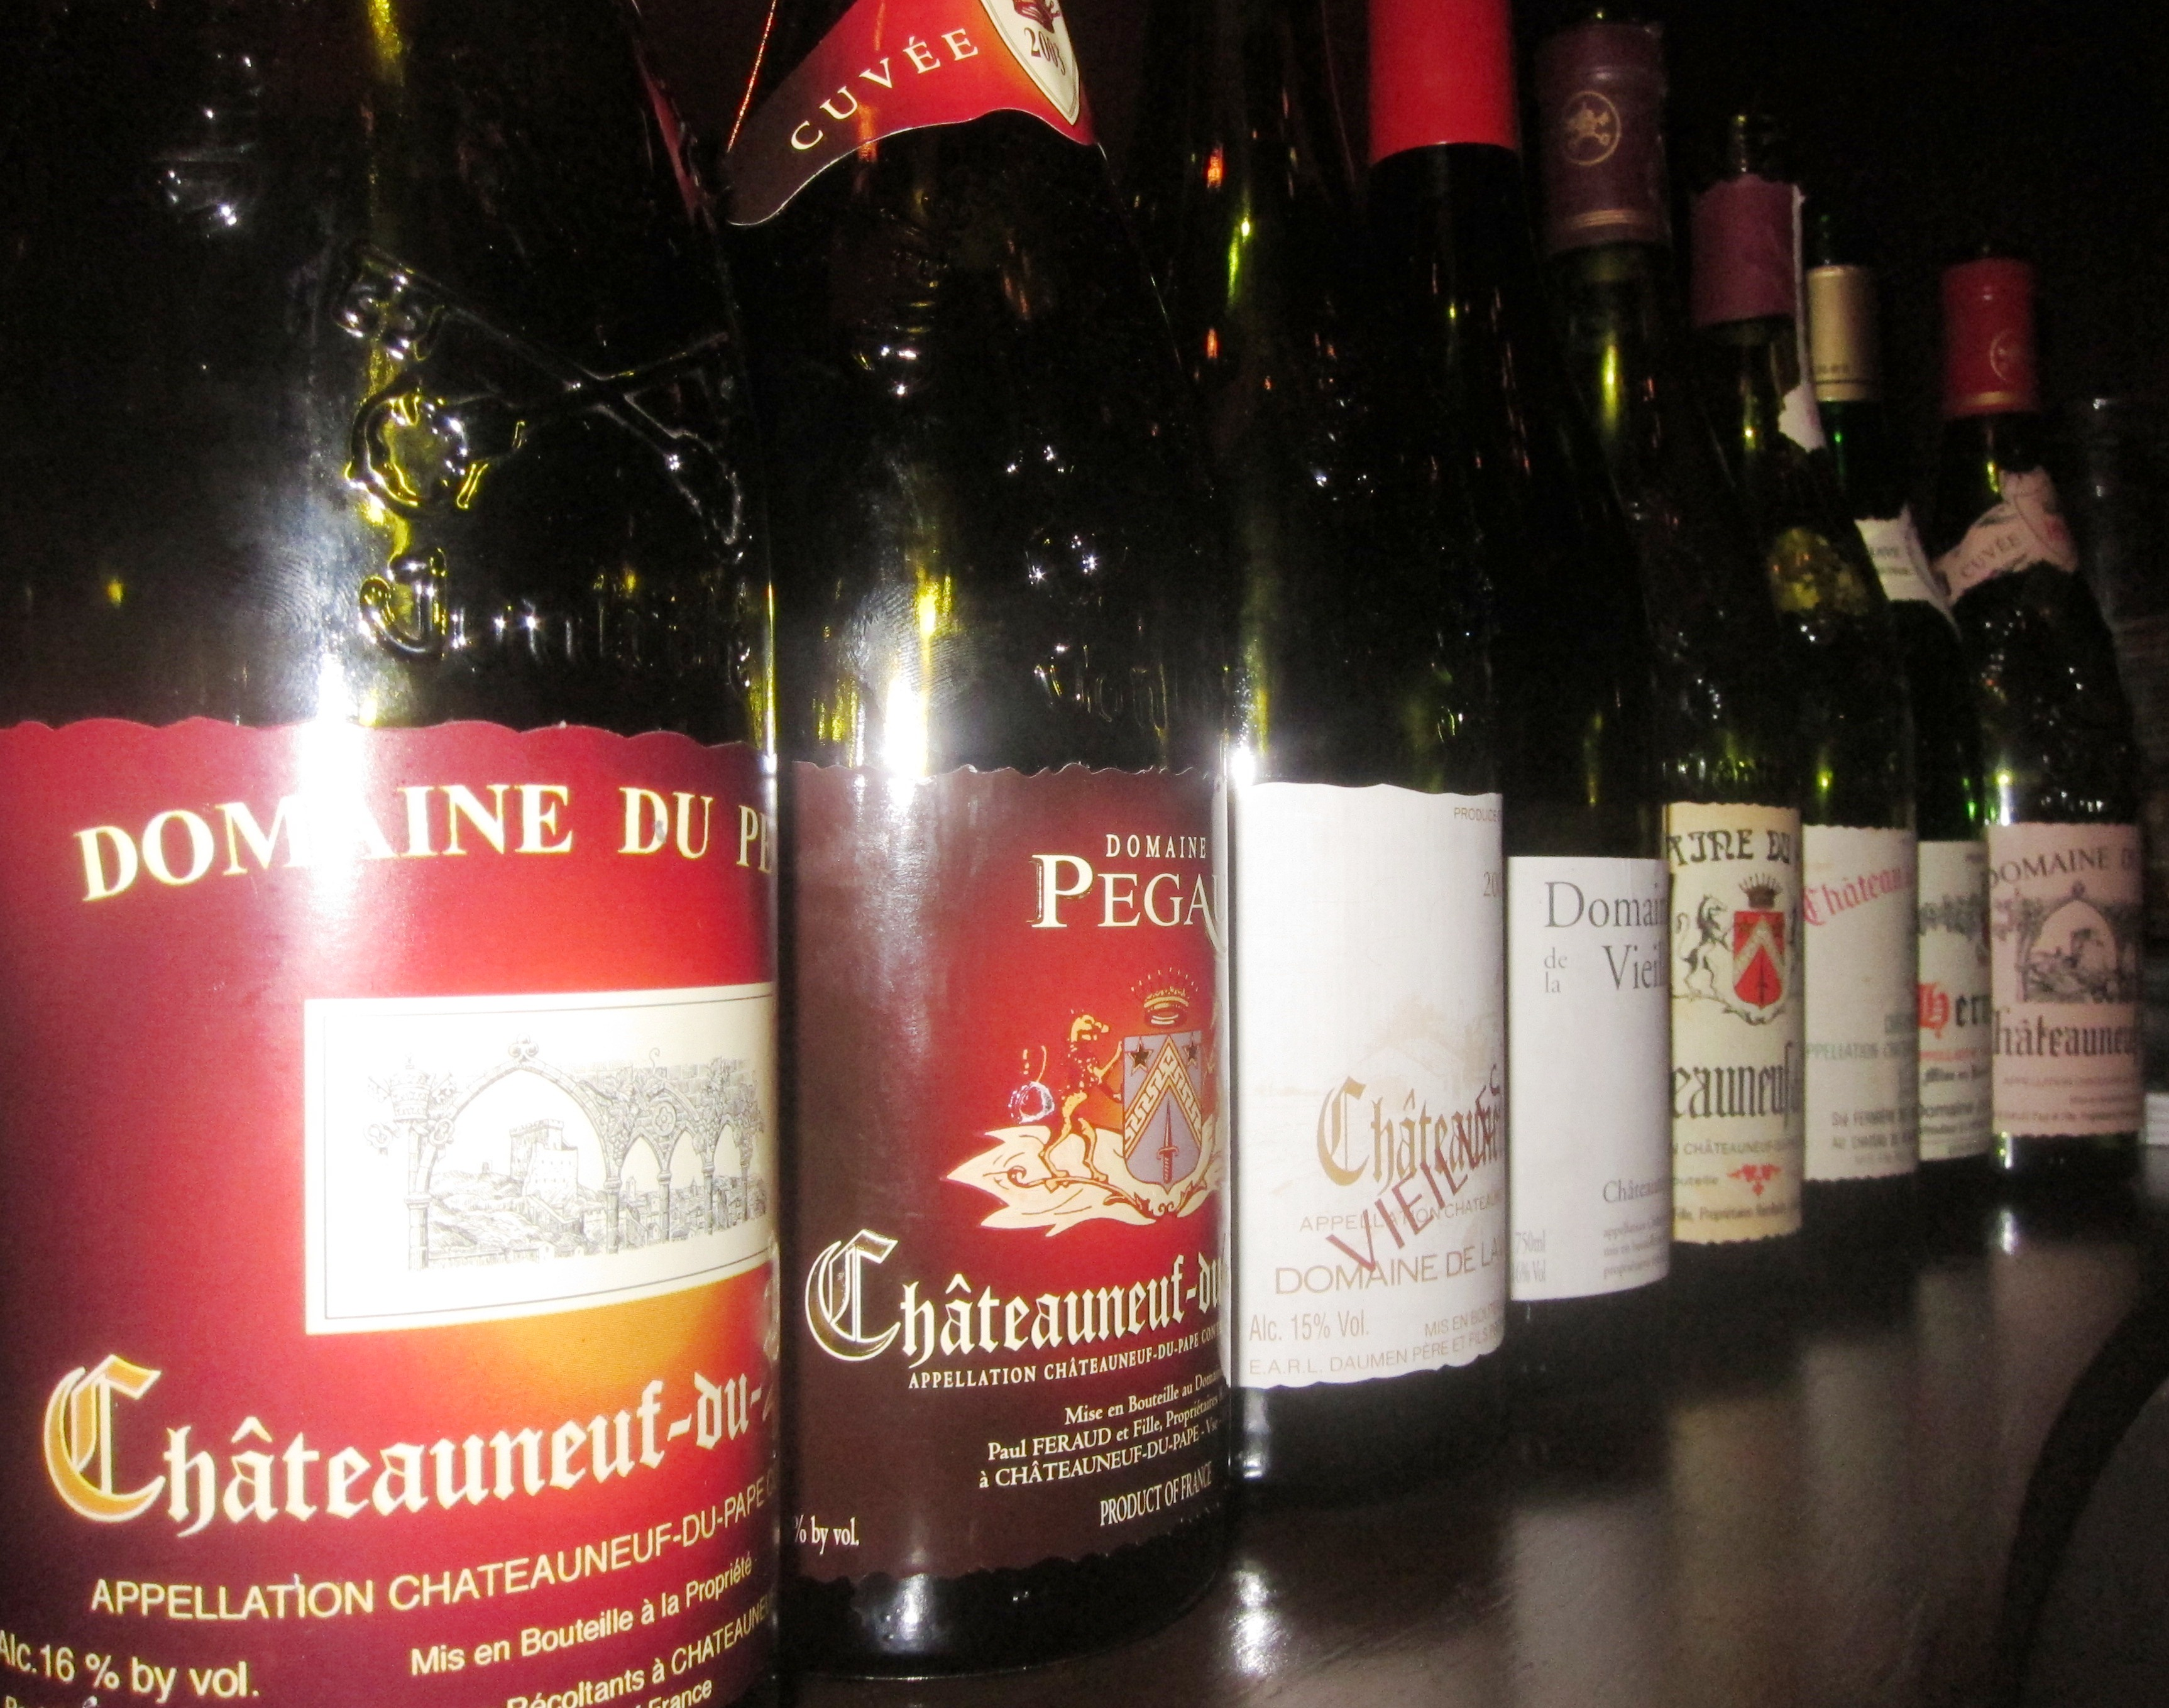 Chateauneuf du Pape rhone wine